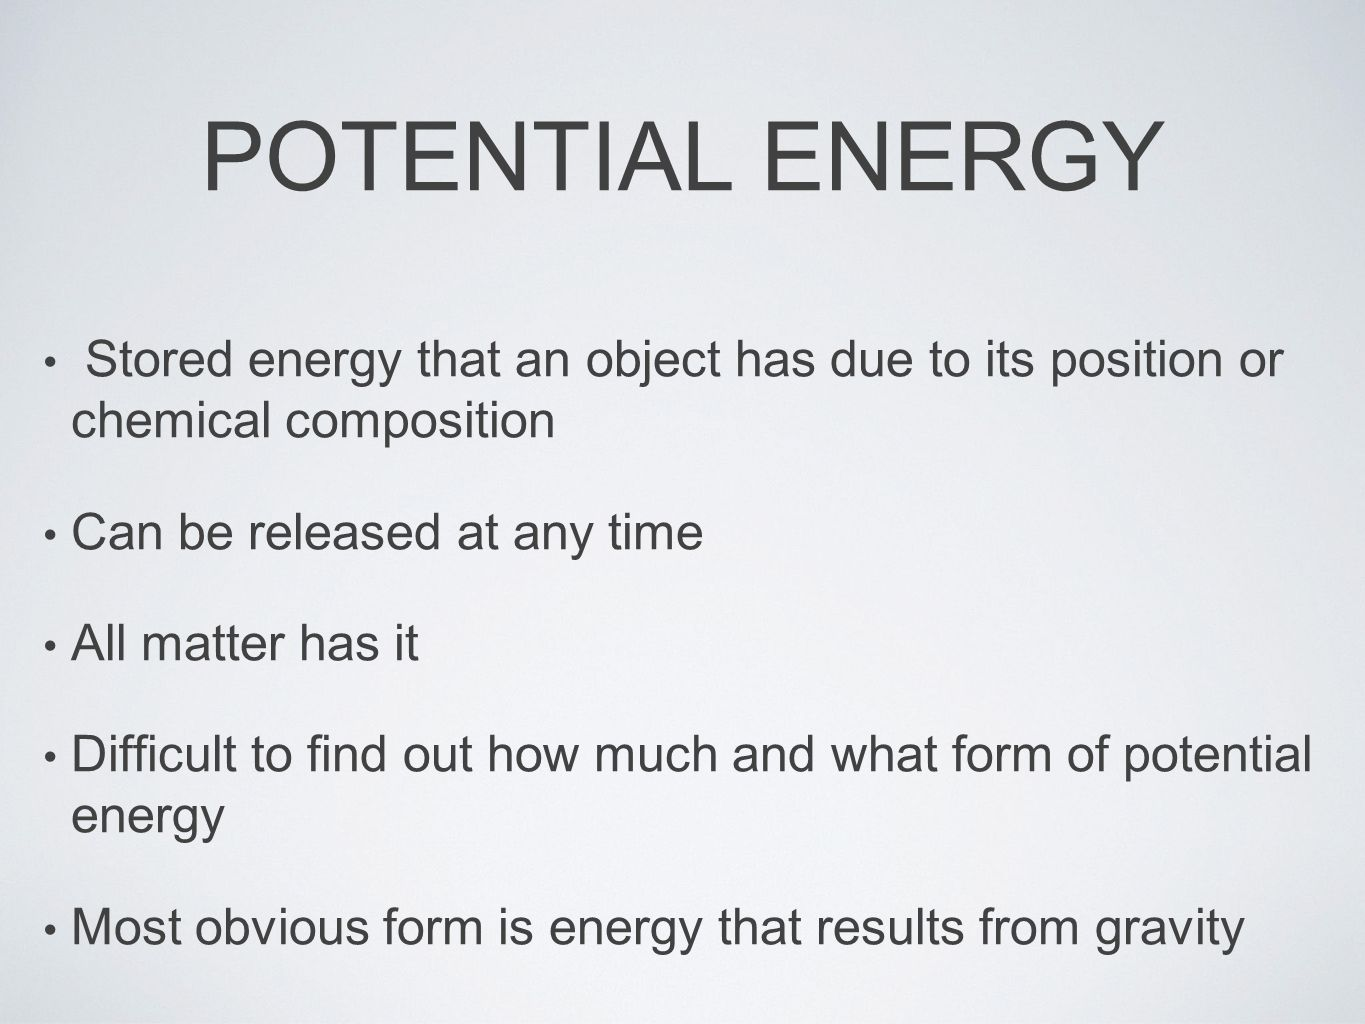 POTENTIAL ENERGY Stored energy that an object has due to its position or chemical composition Can be released at any time All matter has it Difficult to find out how much and what form of potential energy Most obvious form is energy that results from gravity